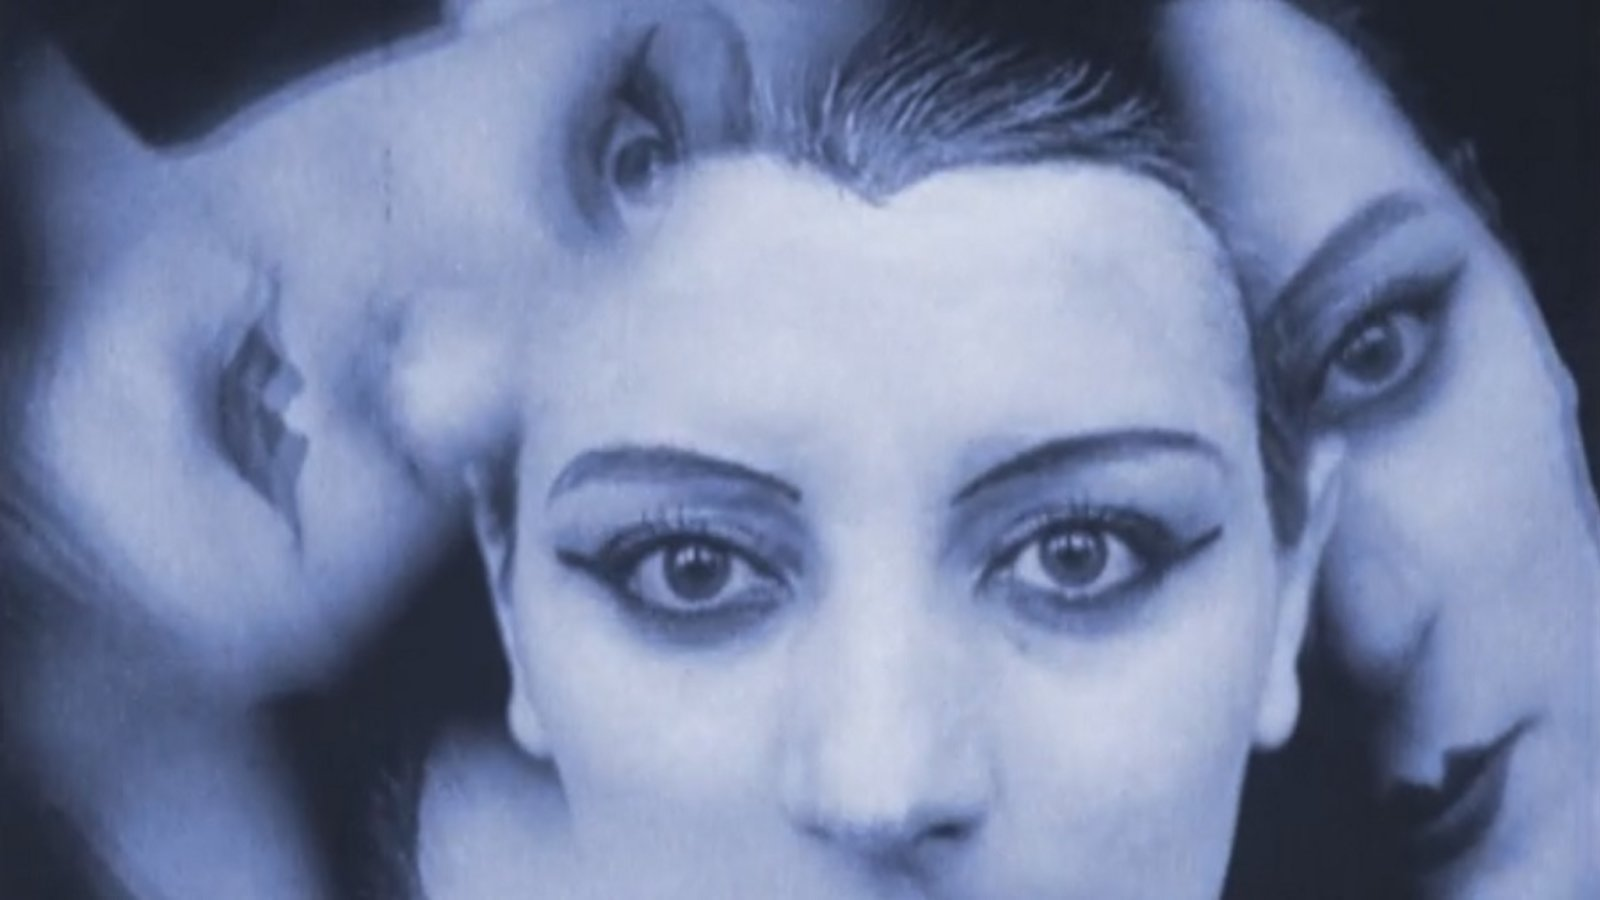 Masterworks of American Avant-garde Experimental Film - The 1920s